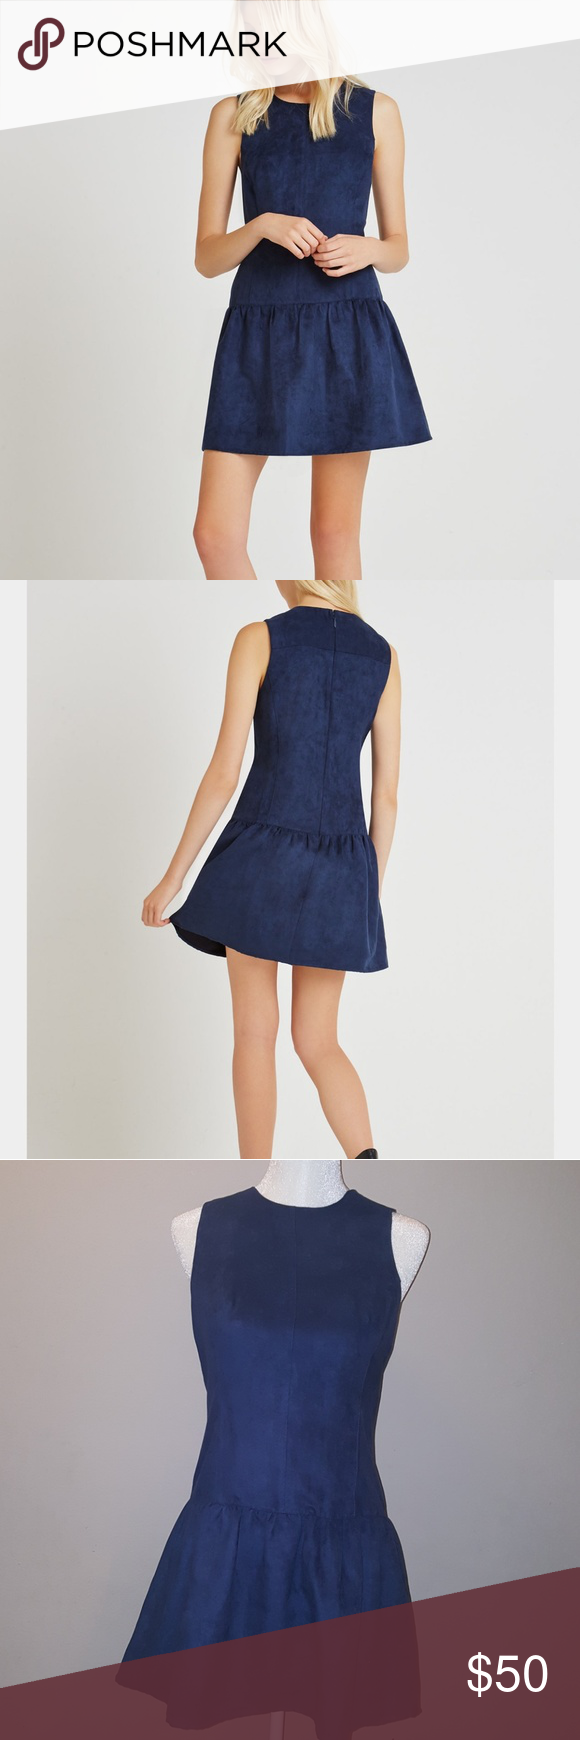 Bcbgeneration Faux-Suede Drop-Waist Dress Round neckline.Sleeveless.Dropped waistline.Hits above the knee.Concealed center back zipper with hook-and-eye closure.Self: Faux suede.Machine Wash.Imported. BCBGeneration Dresses Mini